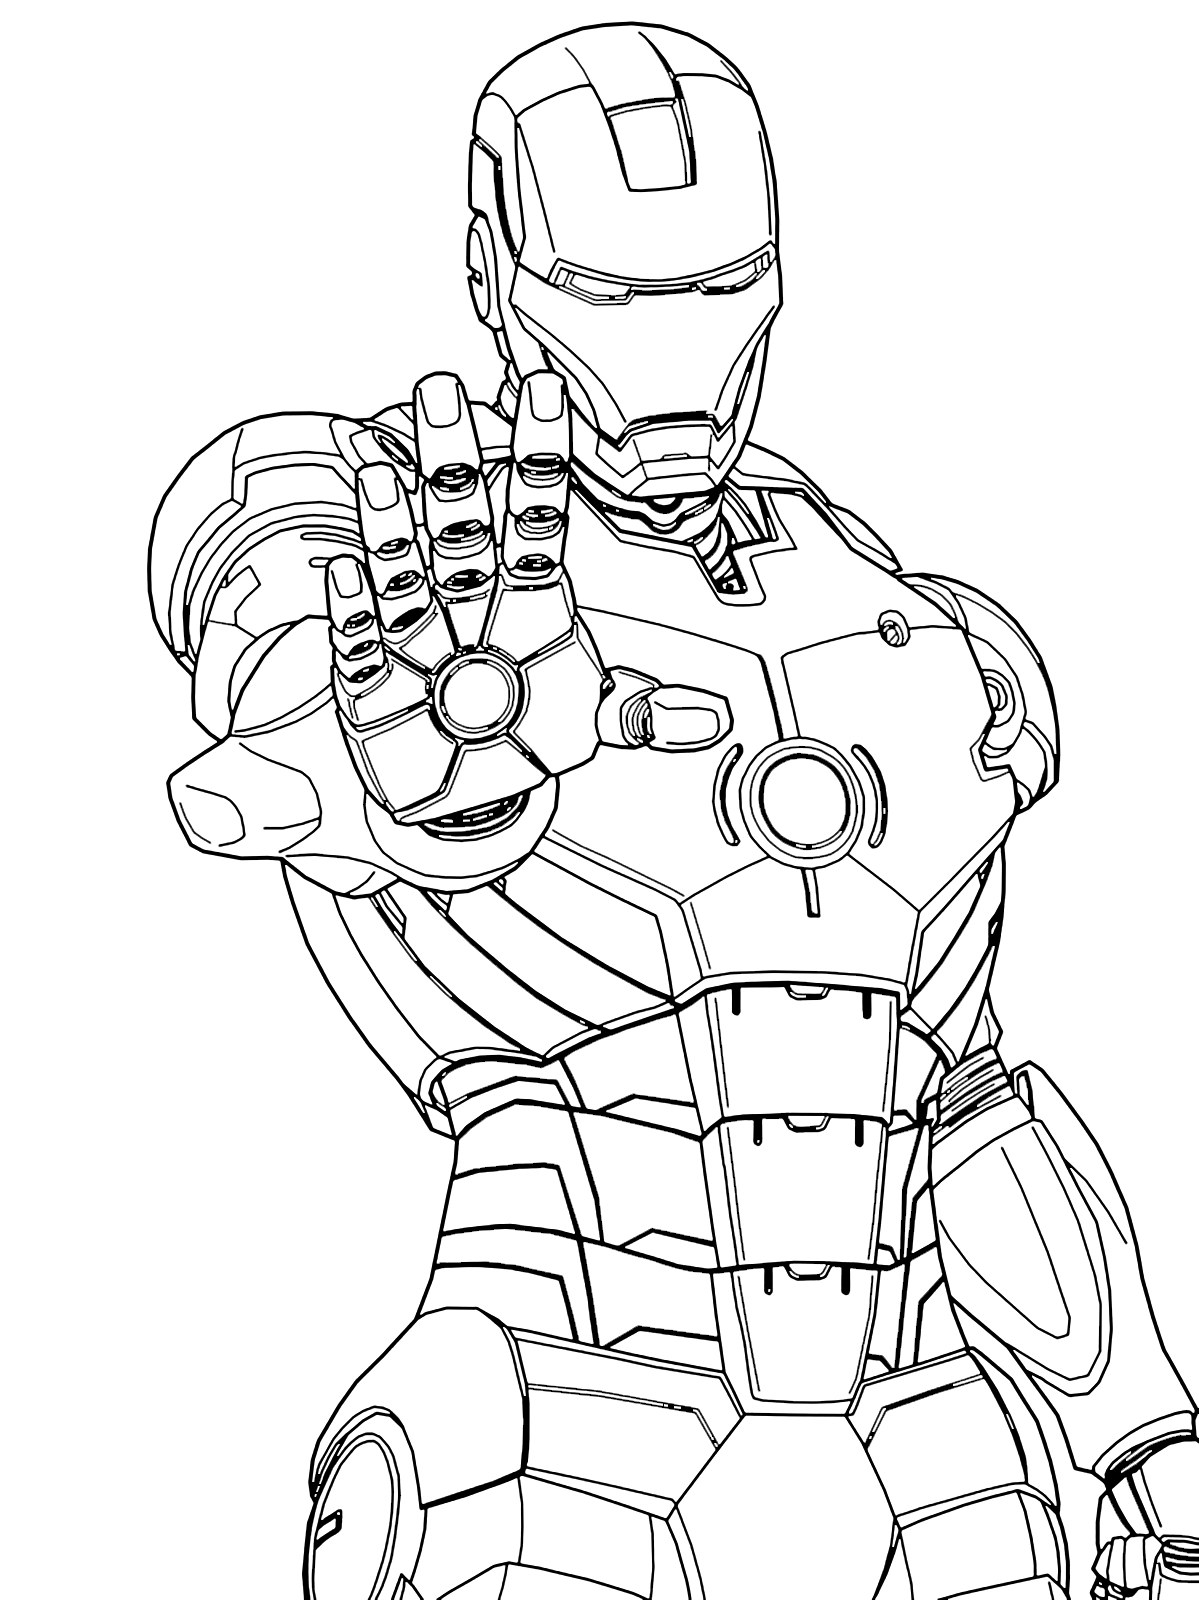 coloring pages of iron man free printable iron man coloring pages for kids best of coloring iron pages man